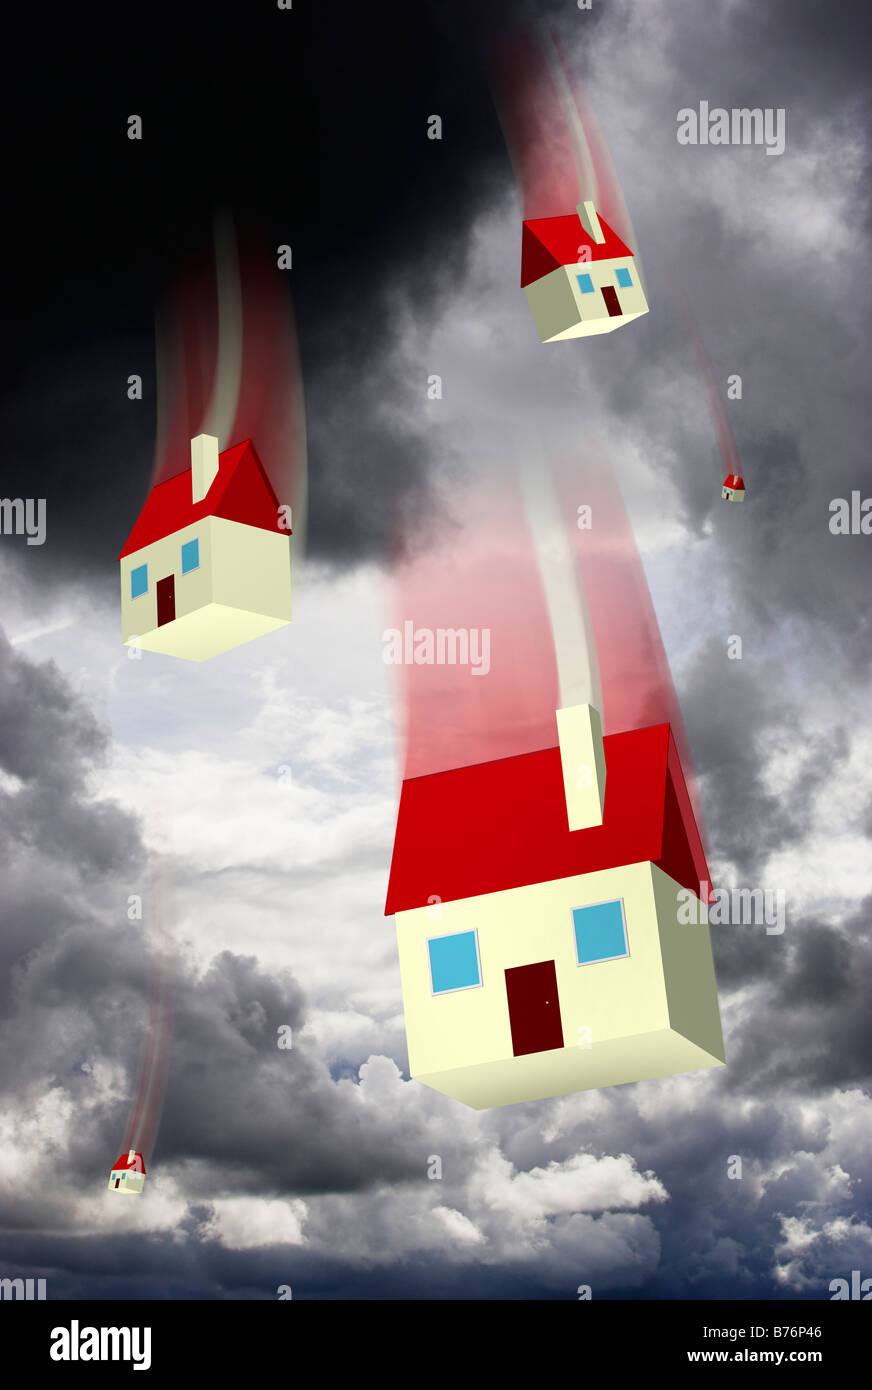 Falling houses against a stormy sky representing housing market values and repossession - digital composite - Stock Image